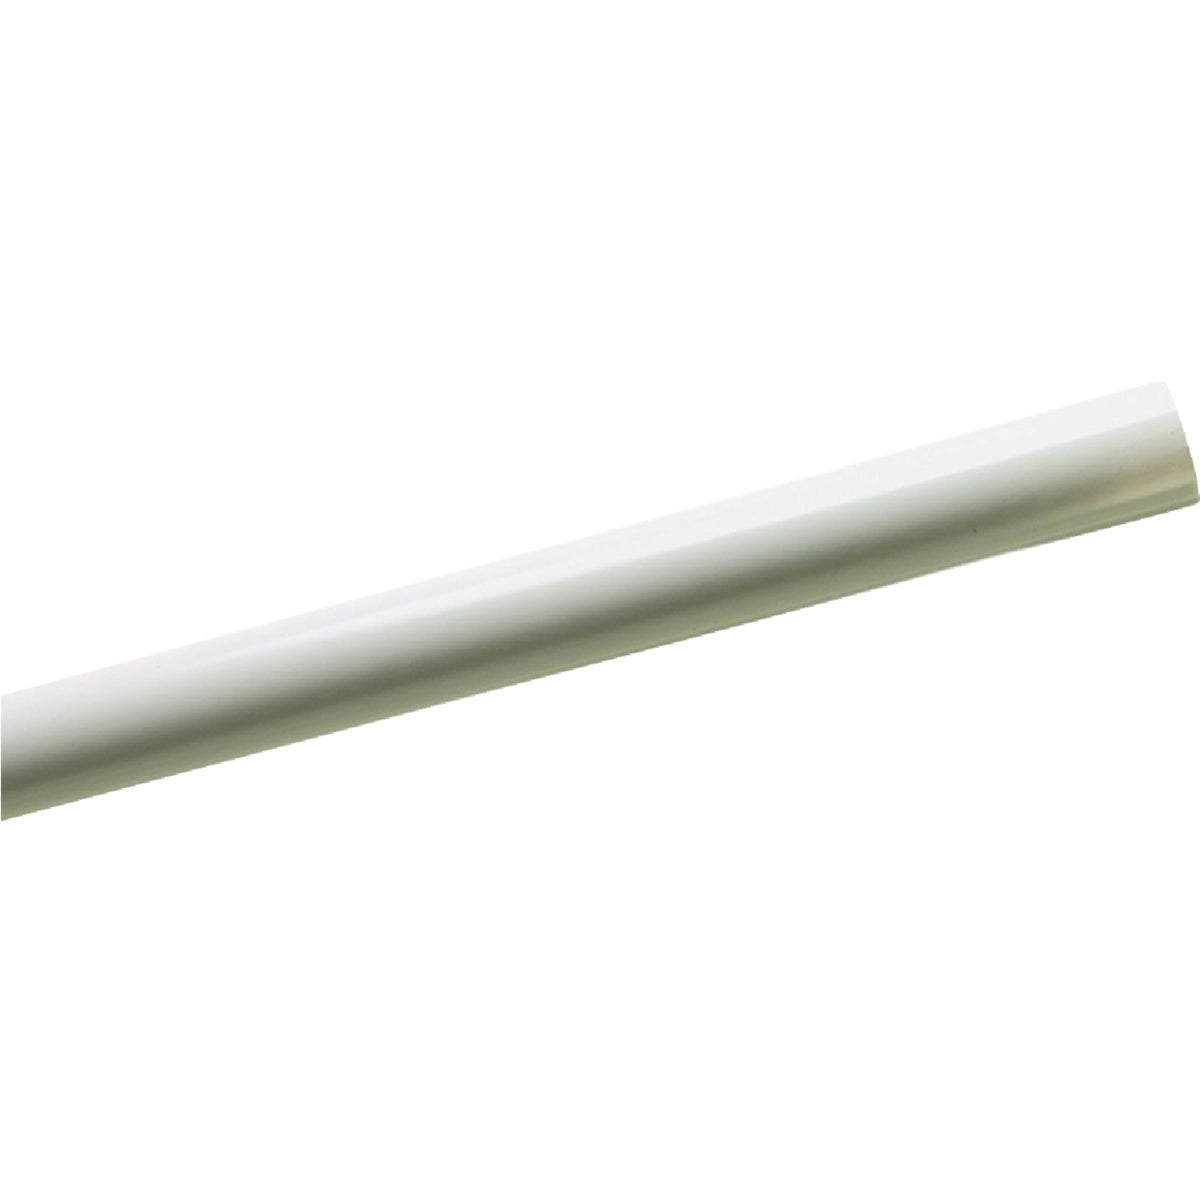 WHITE SHOWER ROD COVER - 600W by Zenith Prod Corp